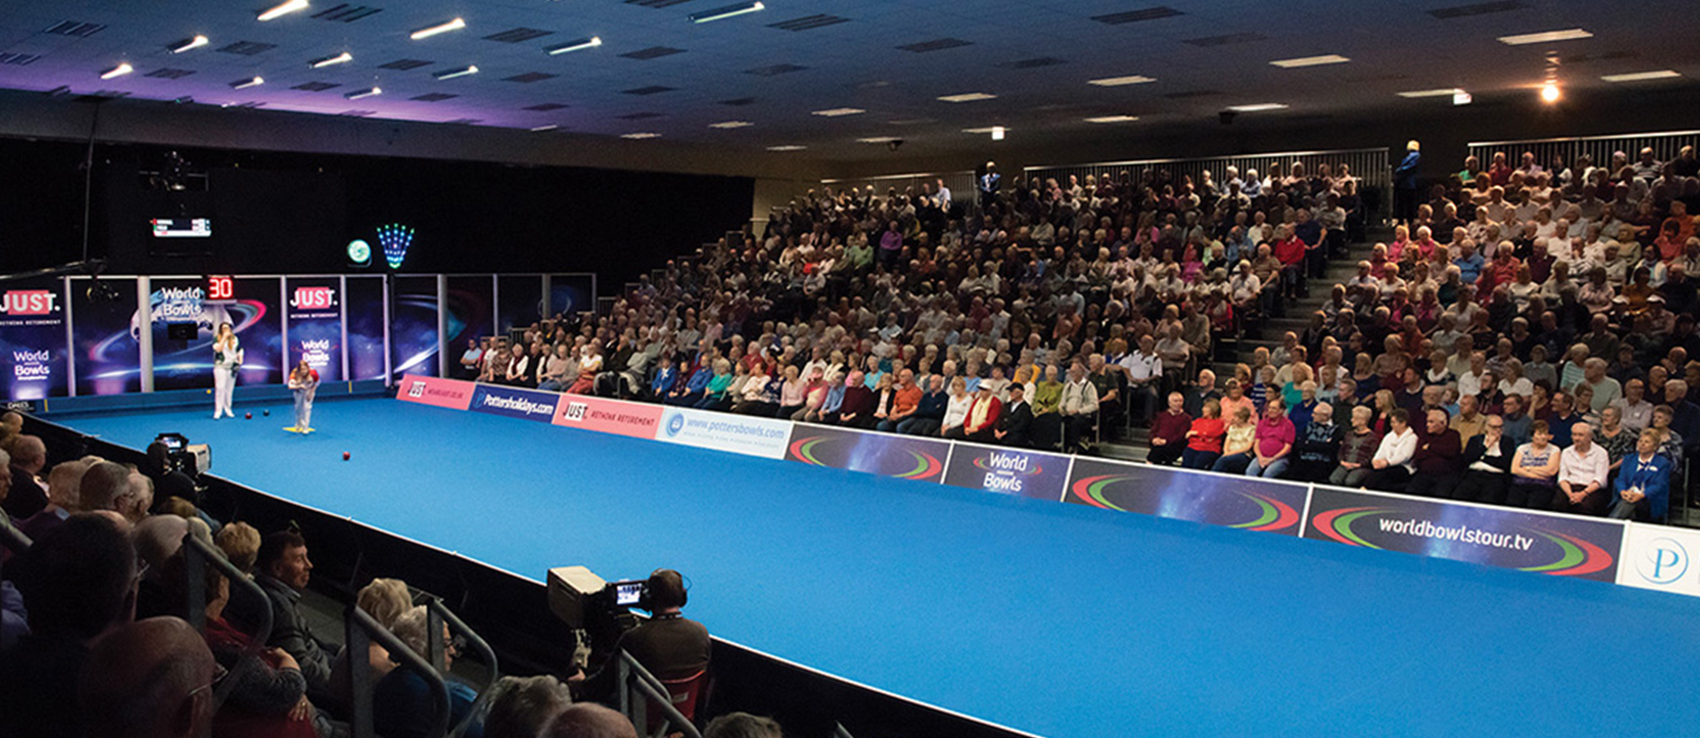 Home of the The Just 2021 World Indoor Bowls Championships